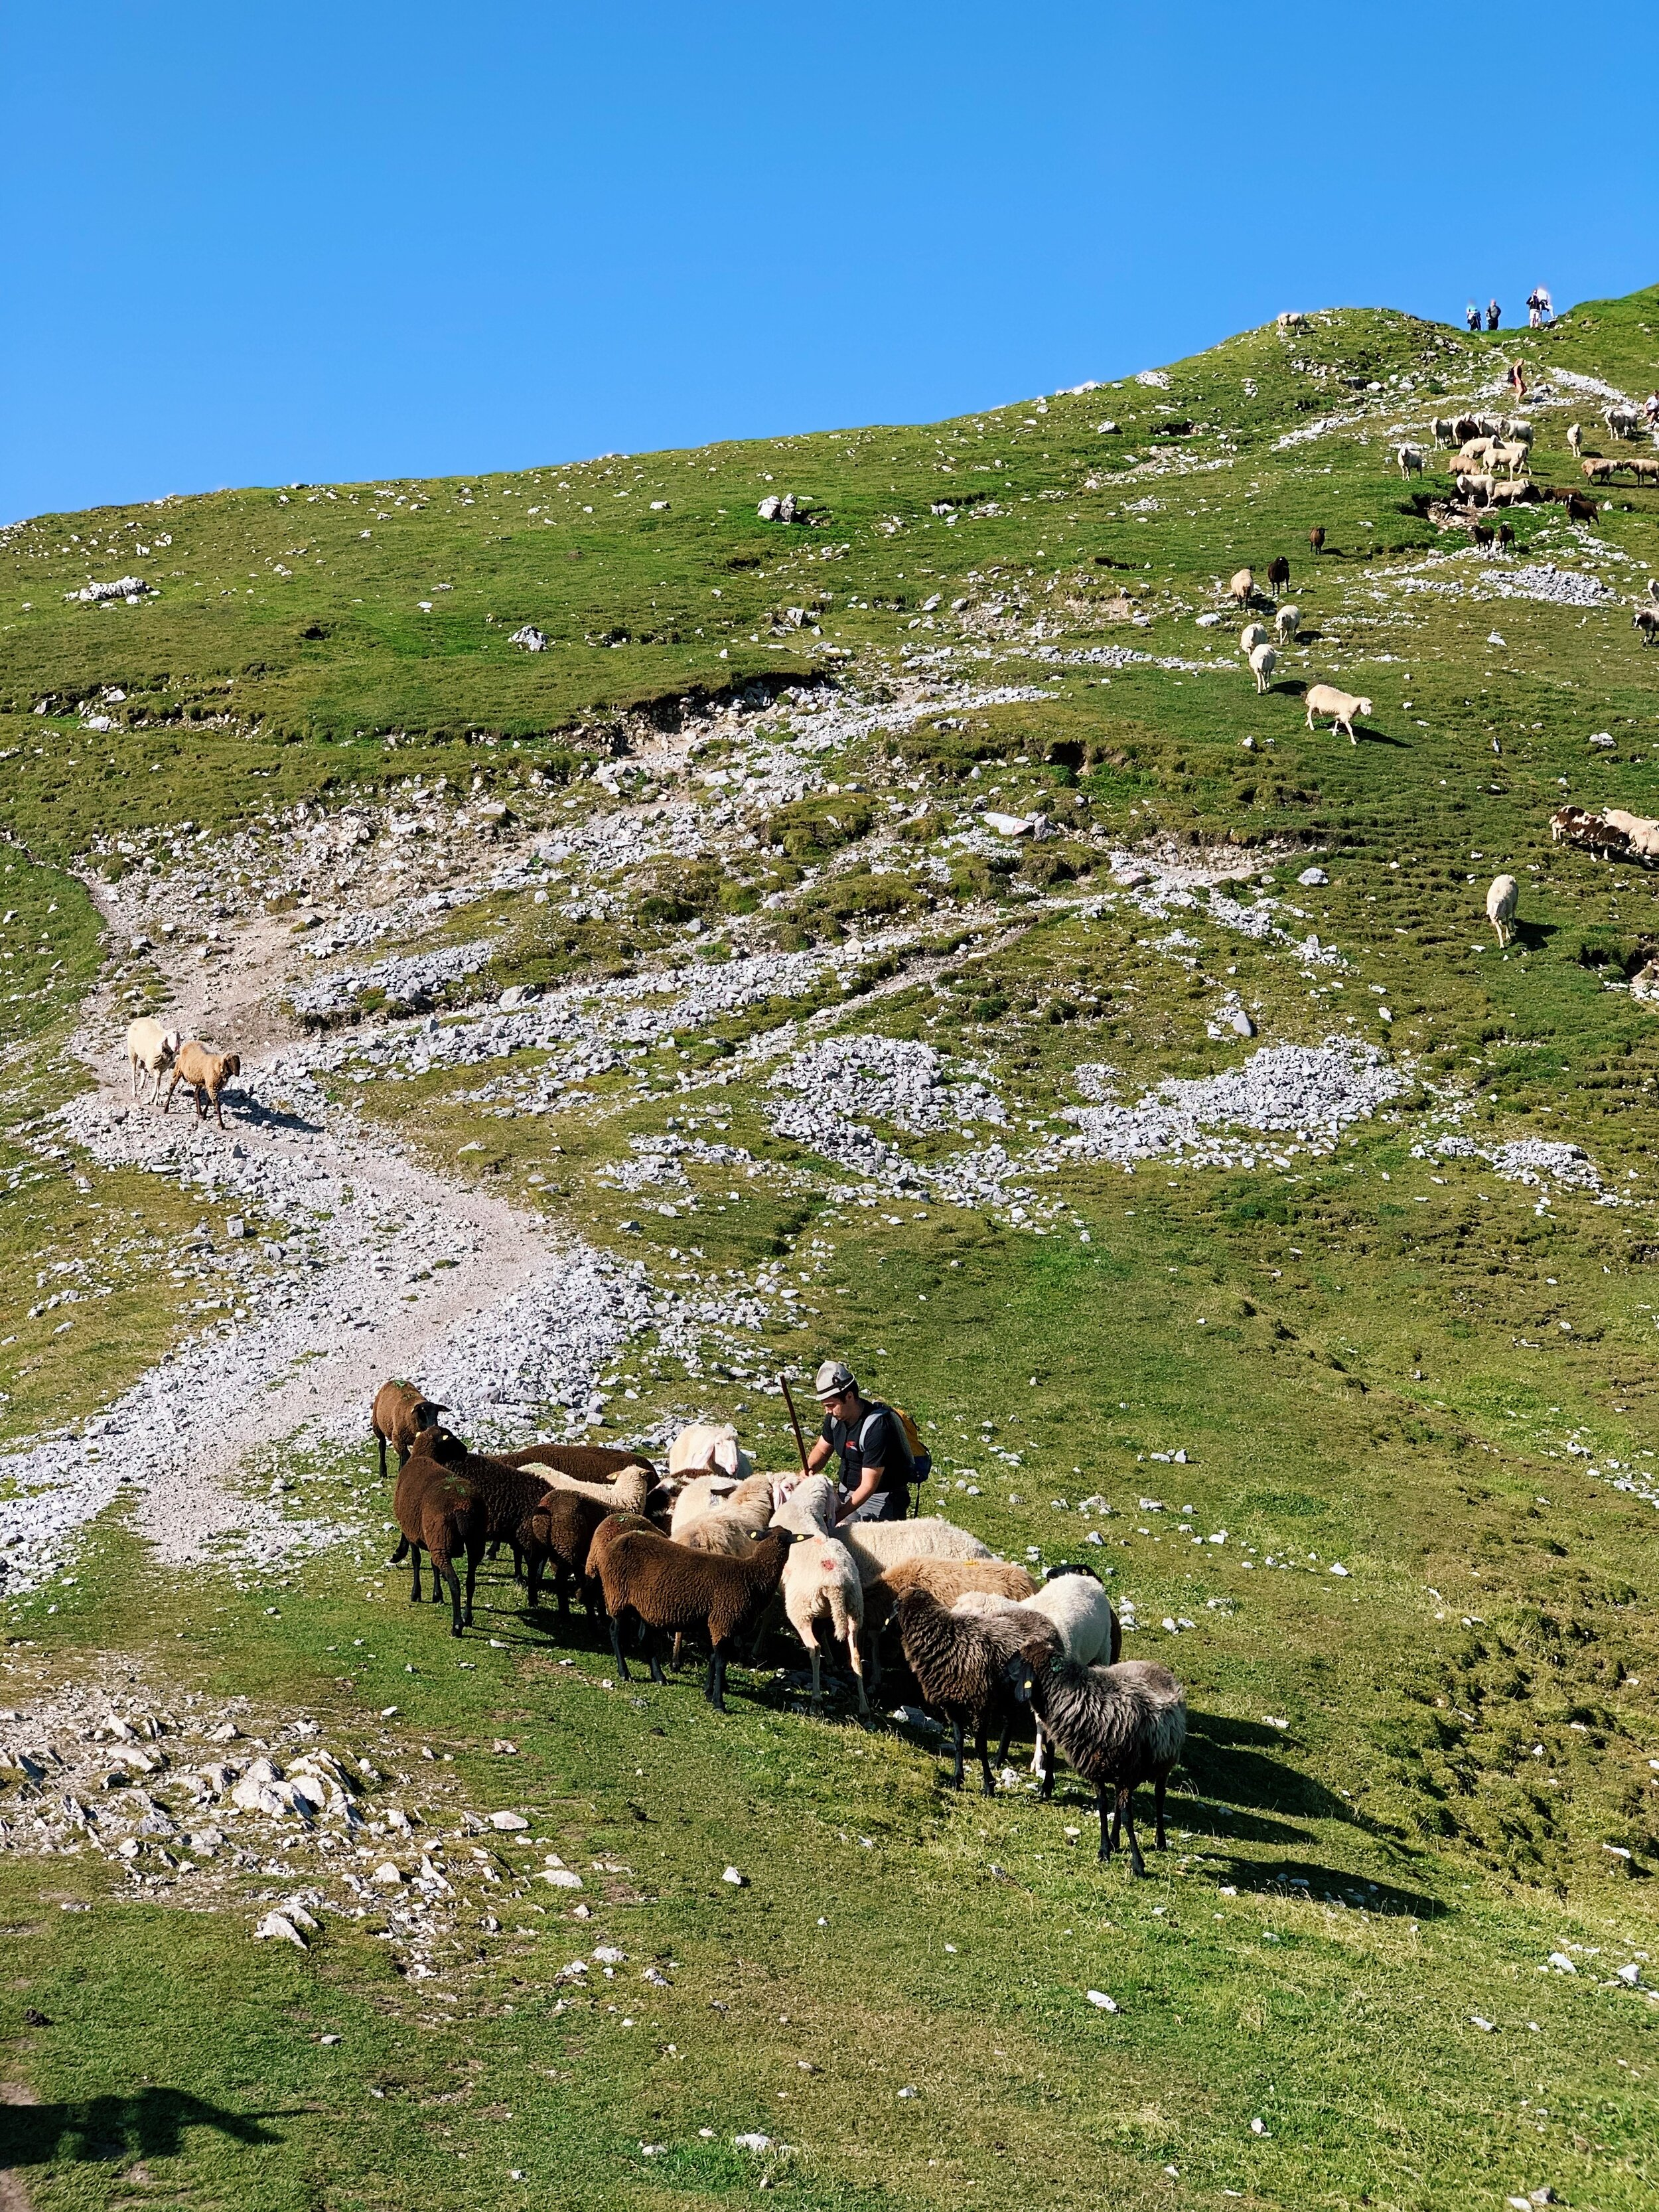 My favorite part of the hike was rounding the corner and seeing this shepherd round up his flock.